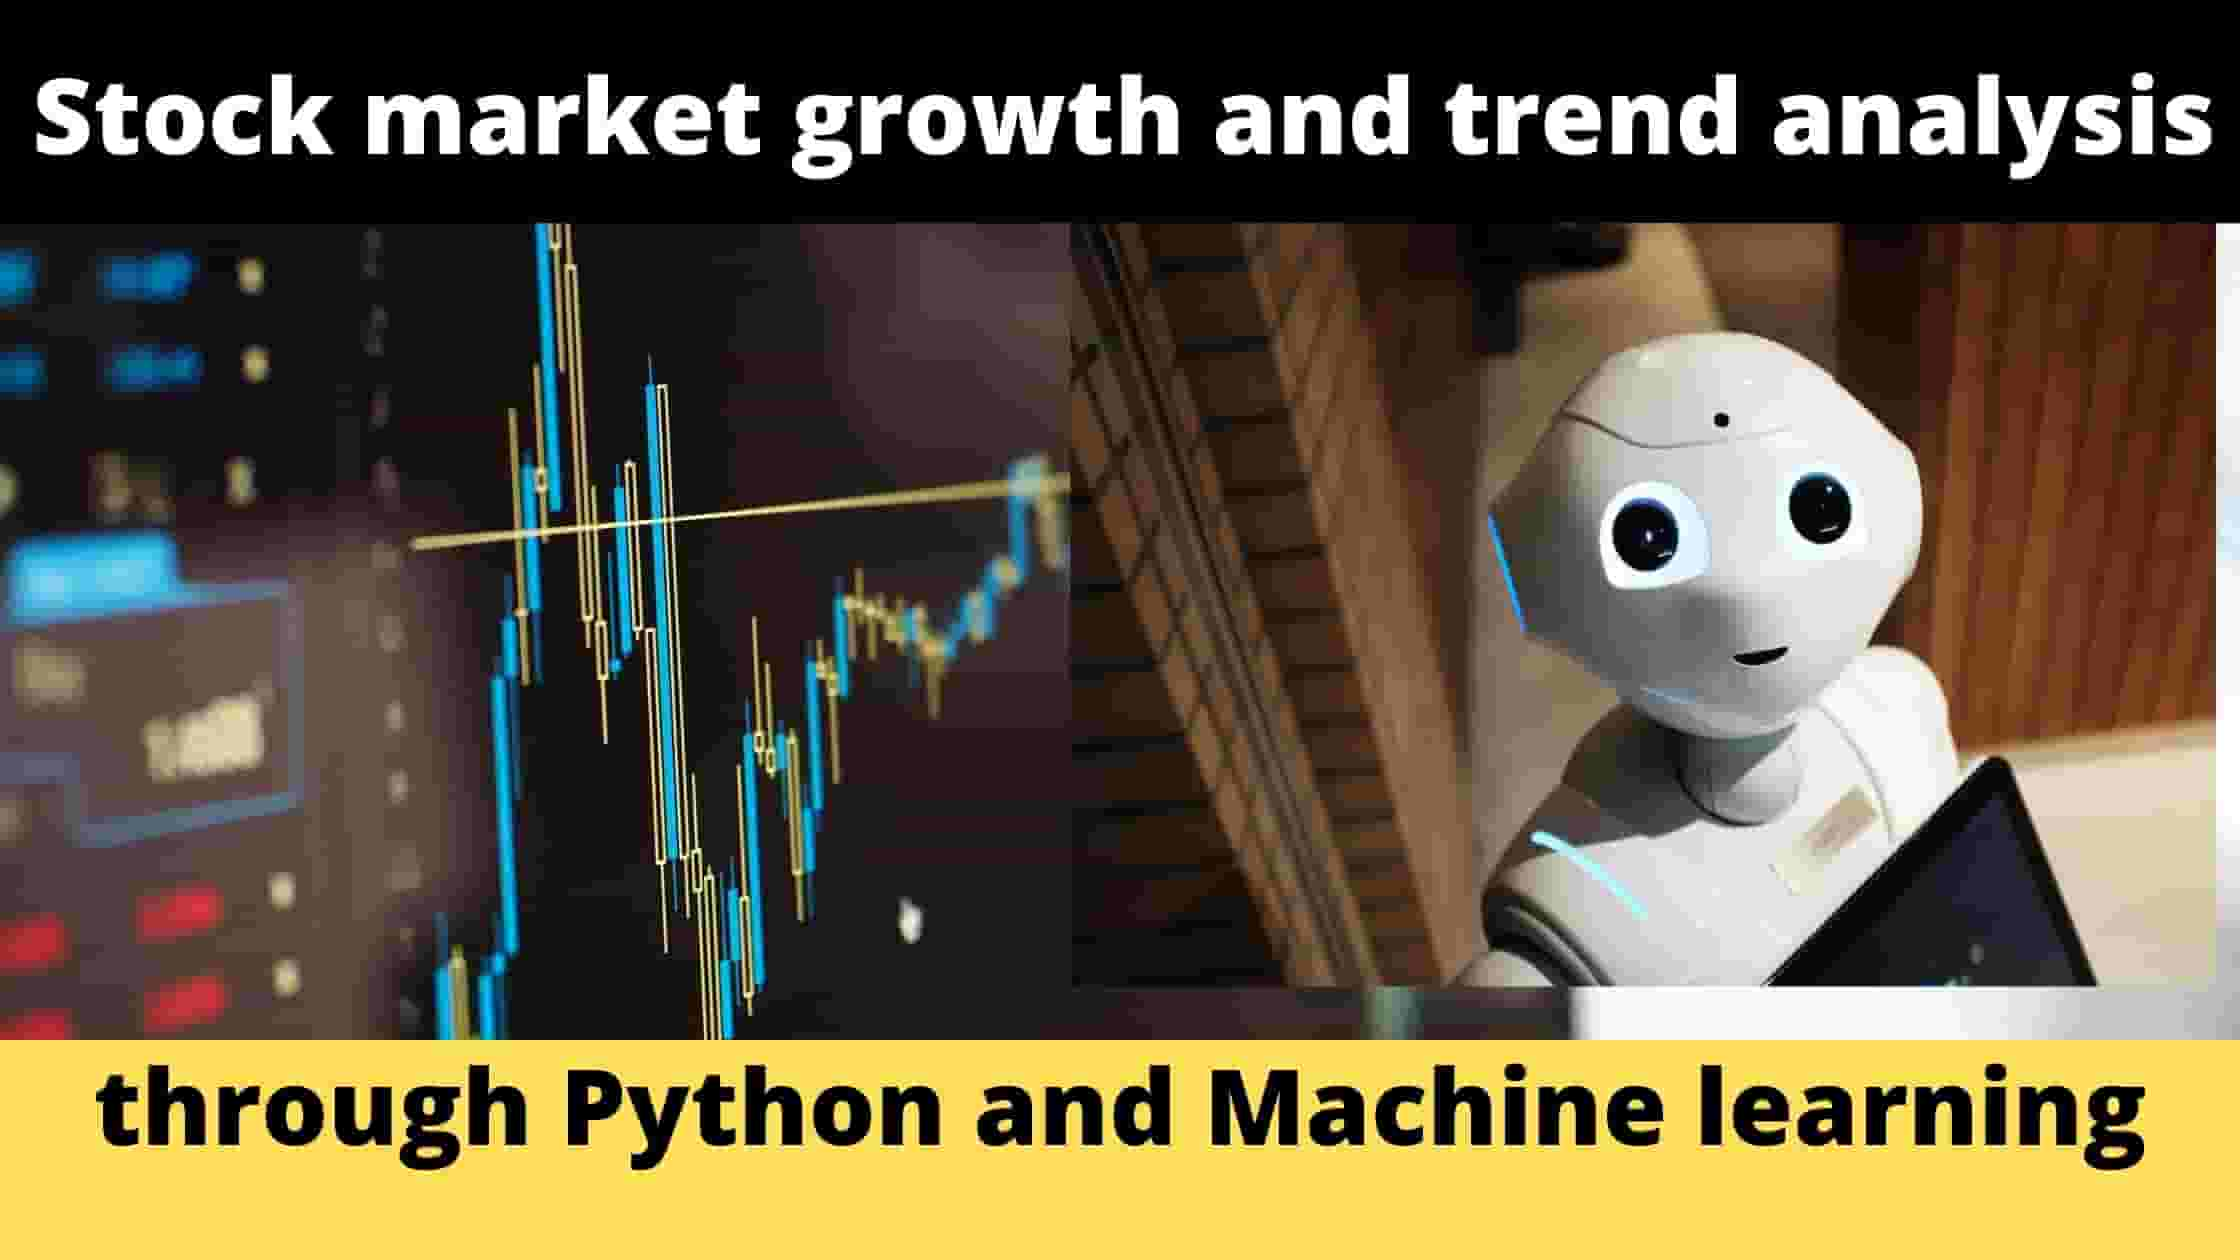 Online workshop on Stock market growth and trend analysis through Python and Machine learning